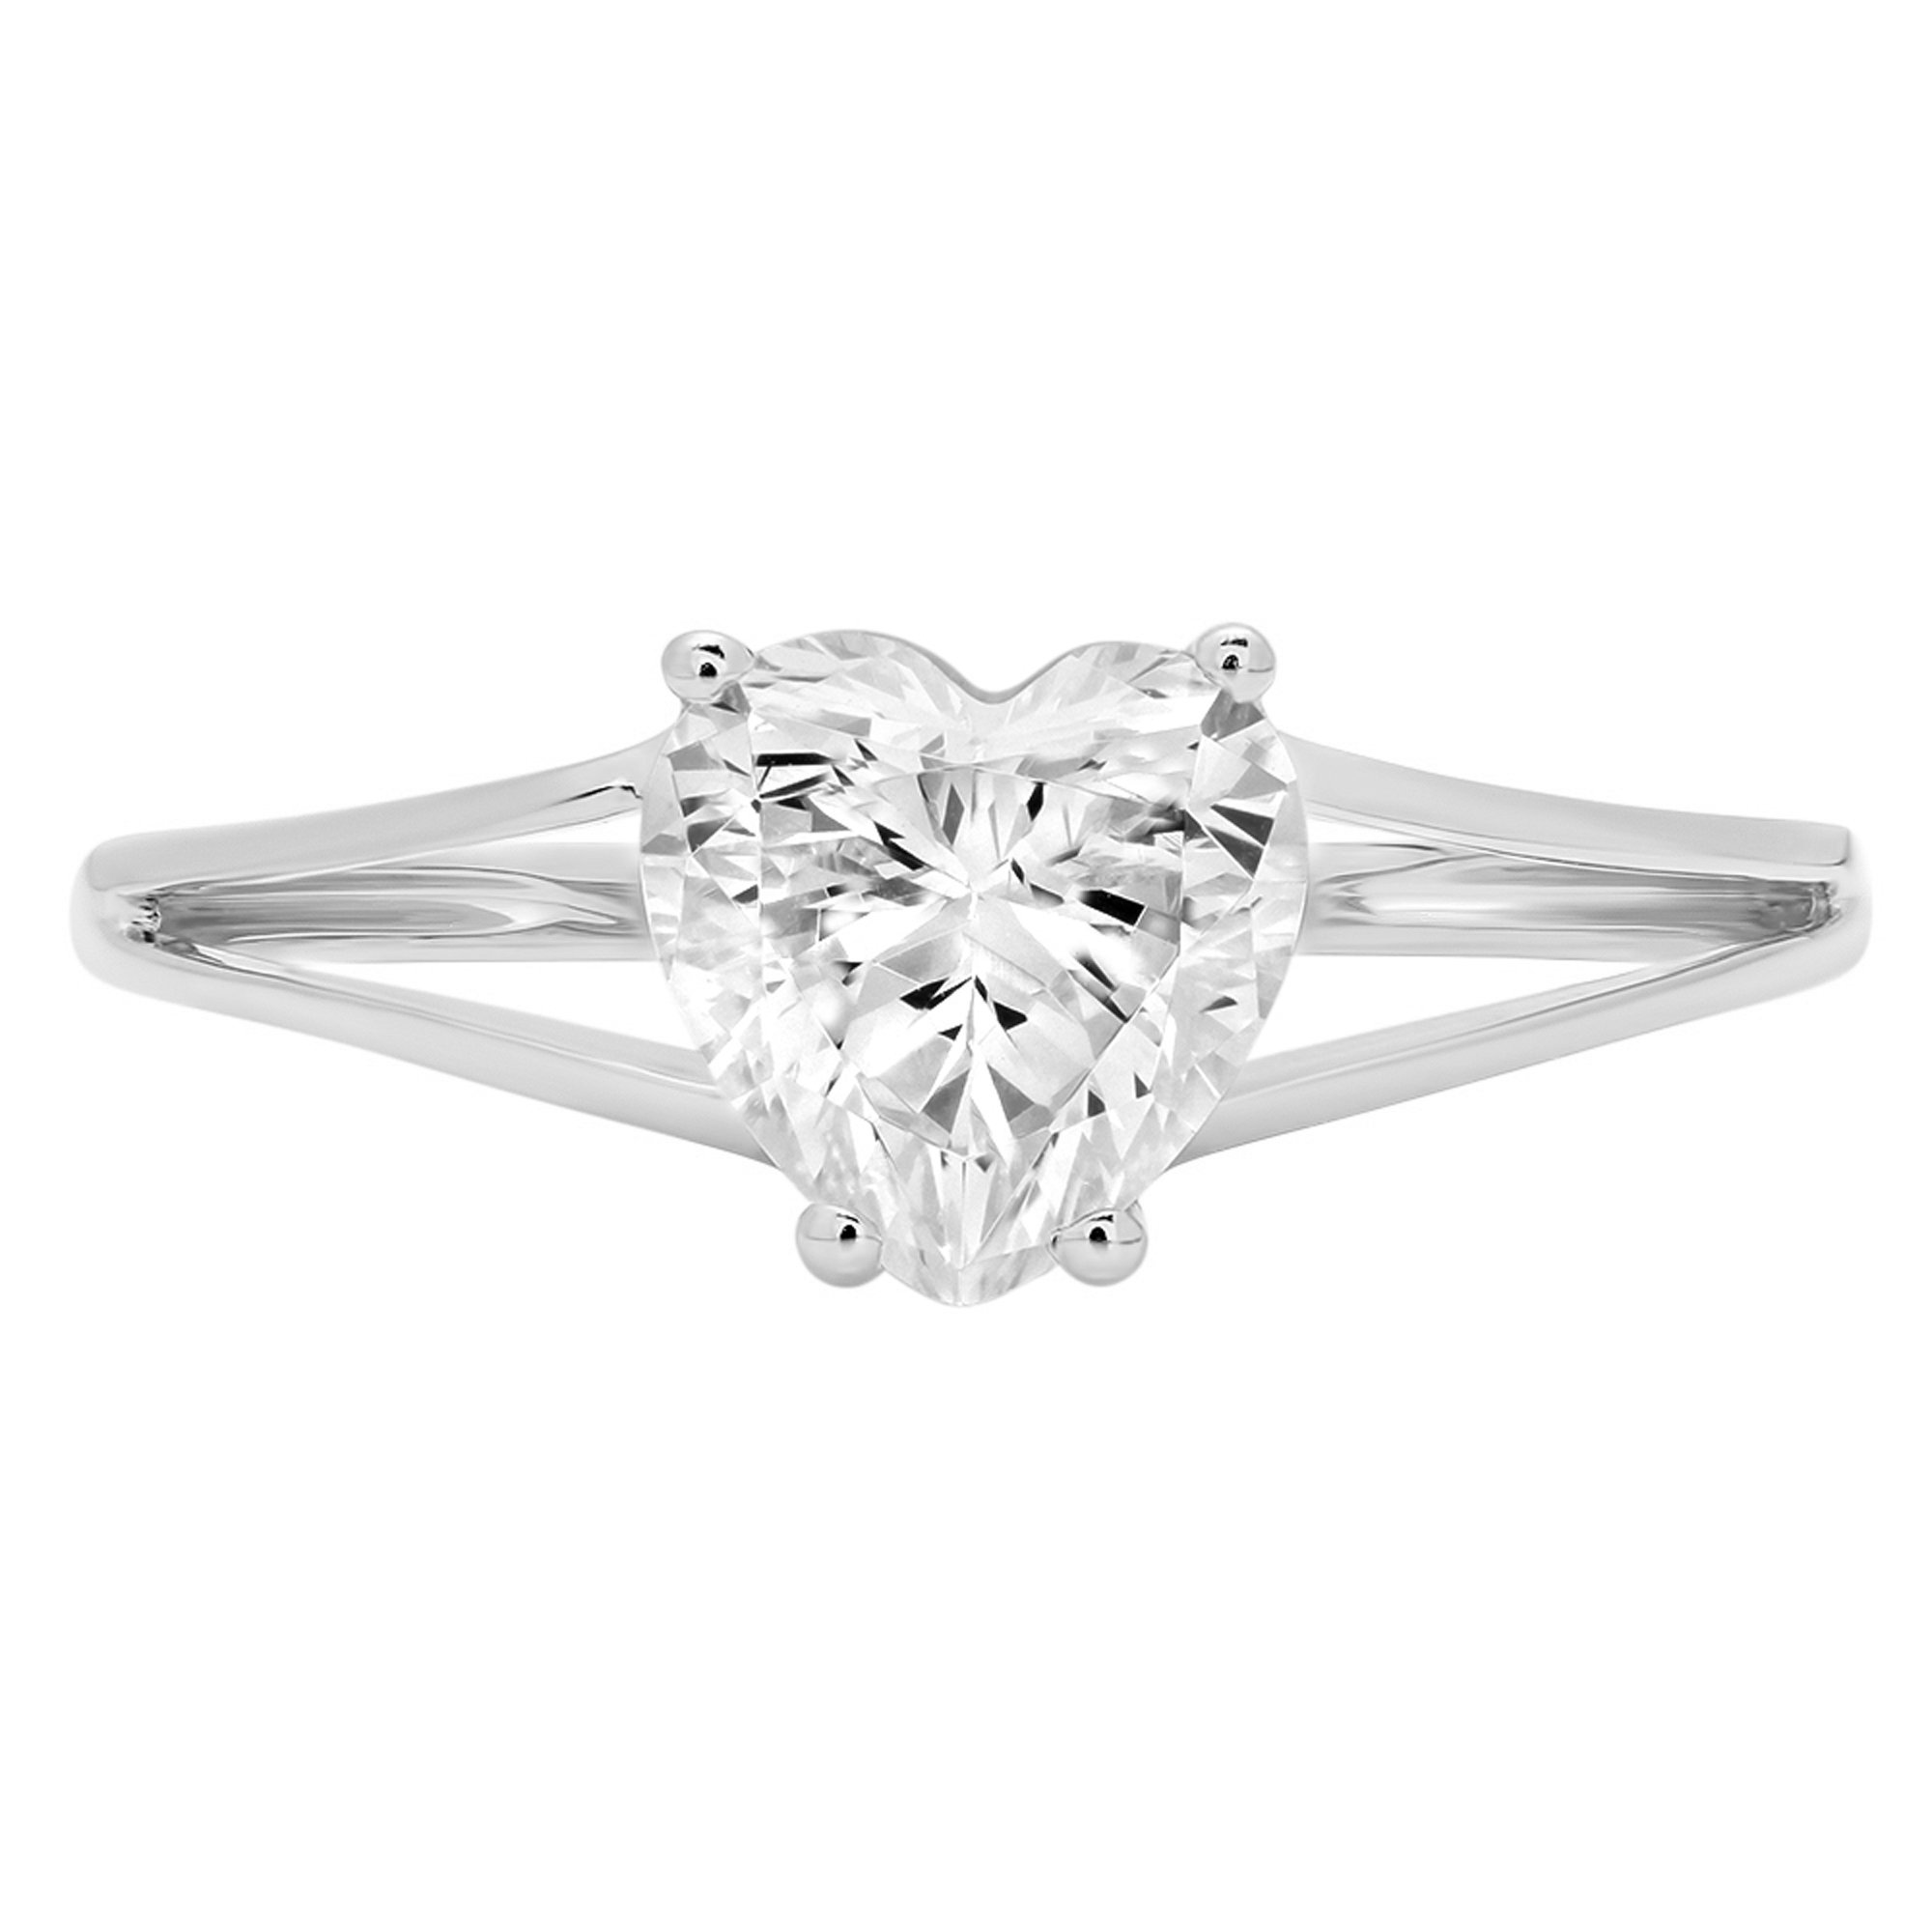 1.4ct Brilliant Heart Cut Designer Solitaire Promise Anniversary Statement Engagement Wedding Bridal Promise Ring For Women Solid 14k White Gold, 7